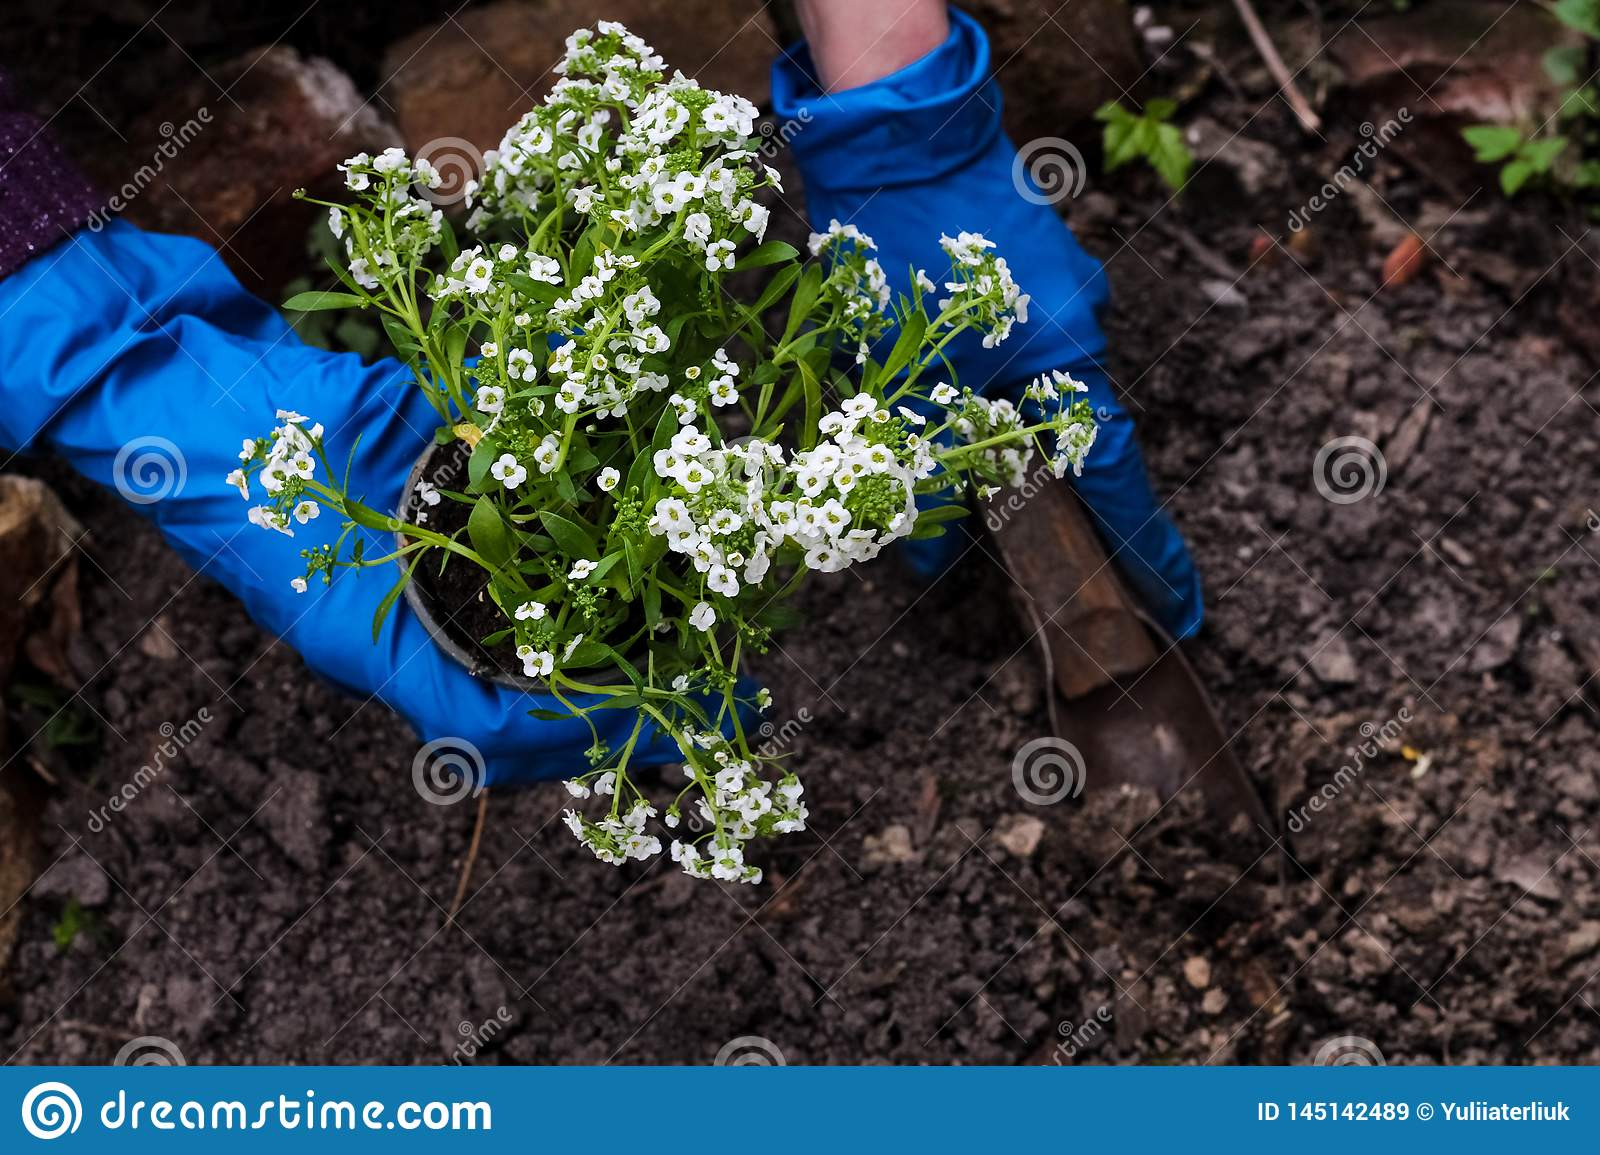 Woman hands planting a white flowers plant in the garden. Gardening work in spring time